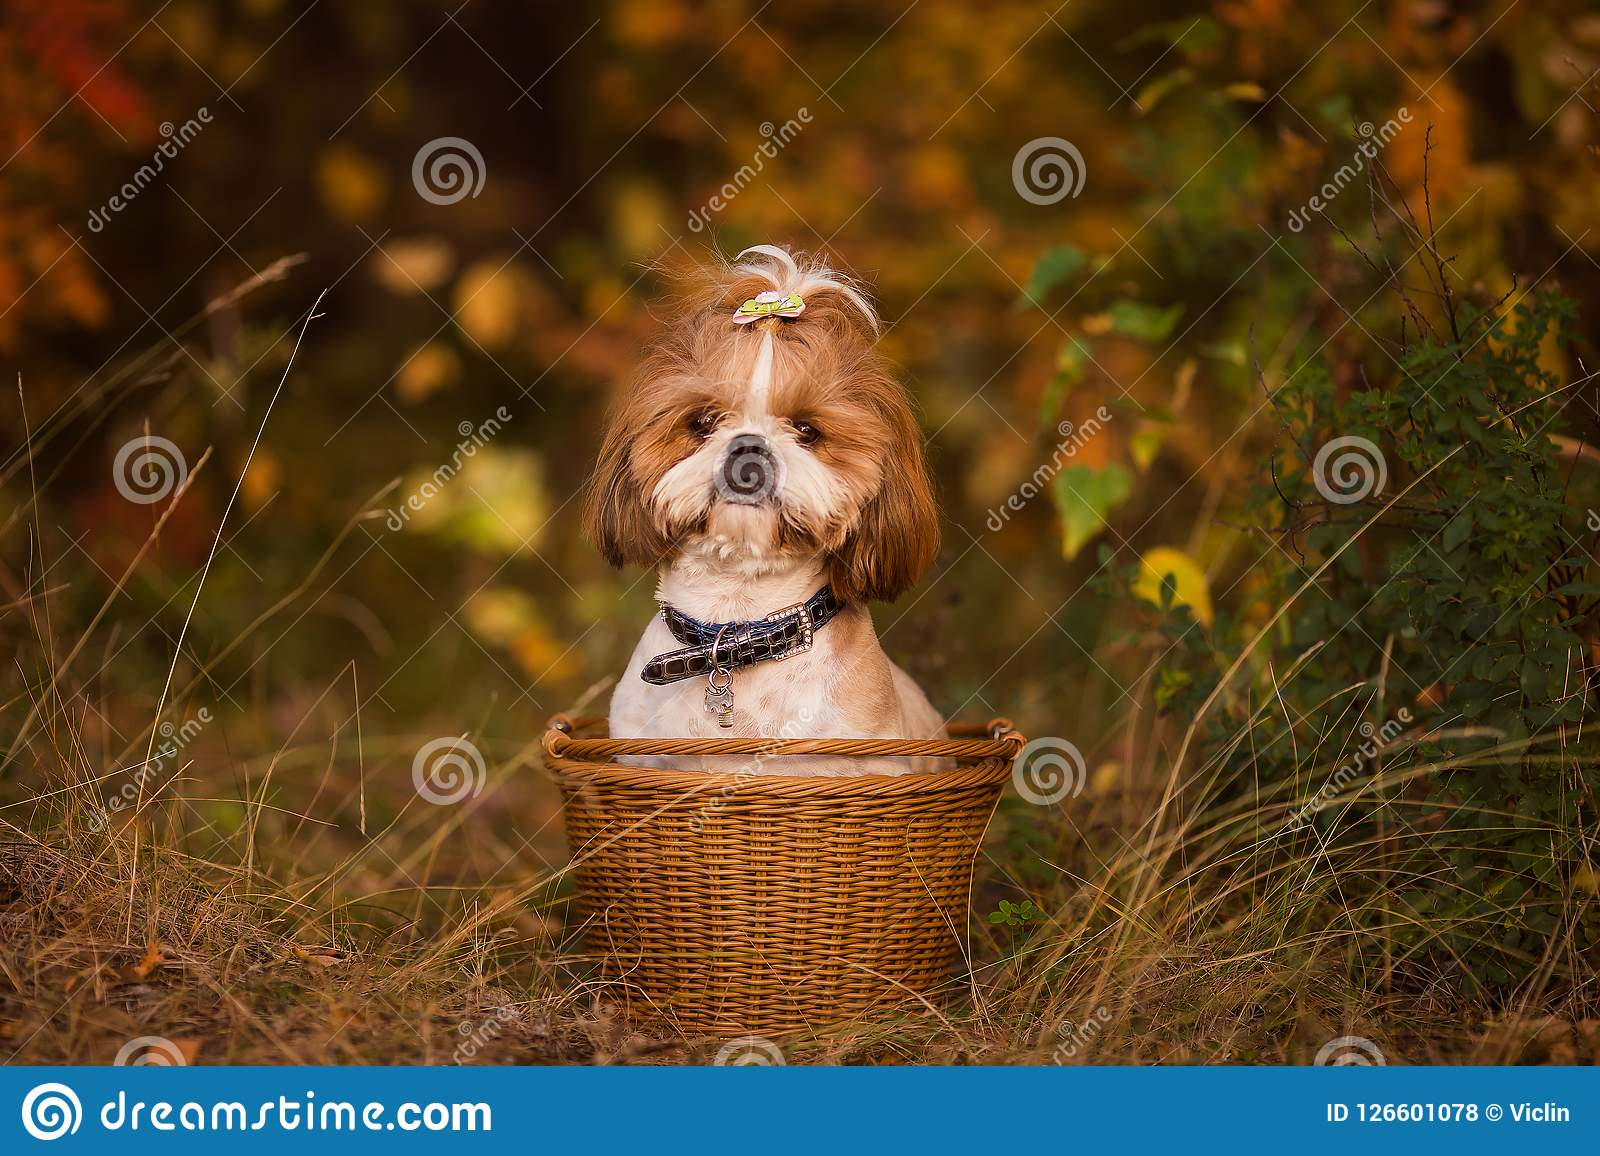 Cute puppy in a basket in the autumn forest